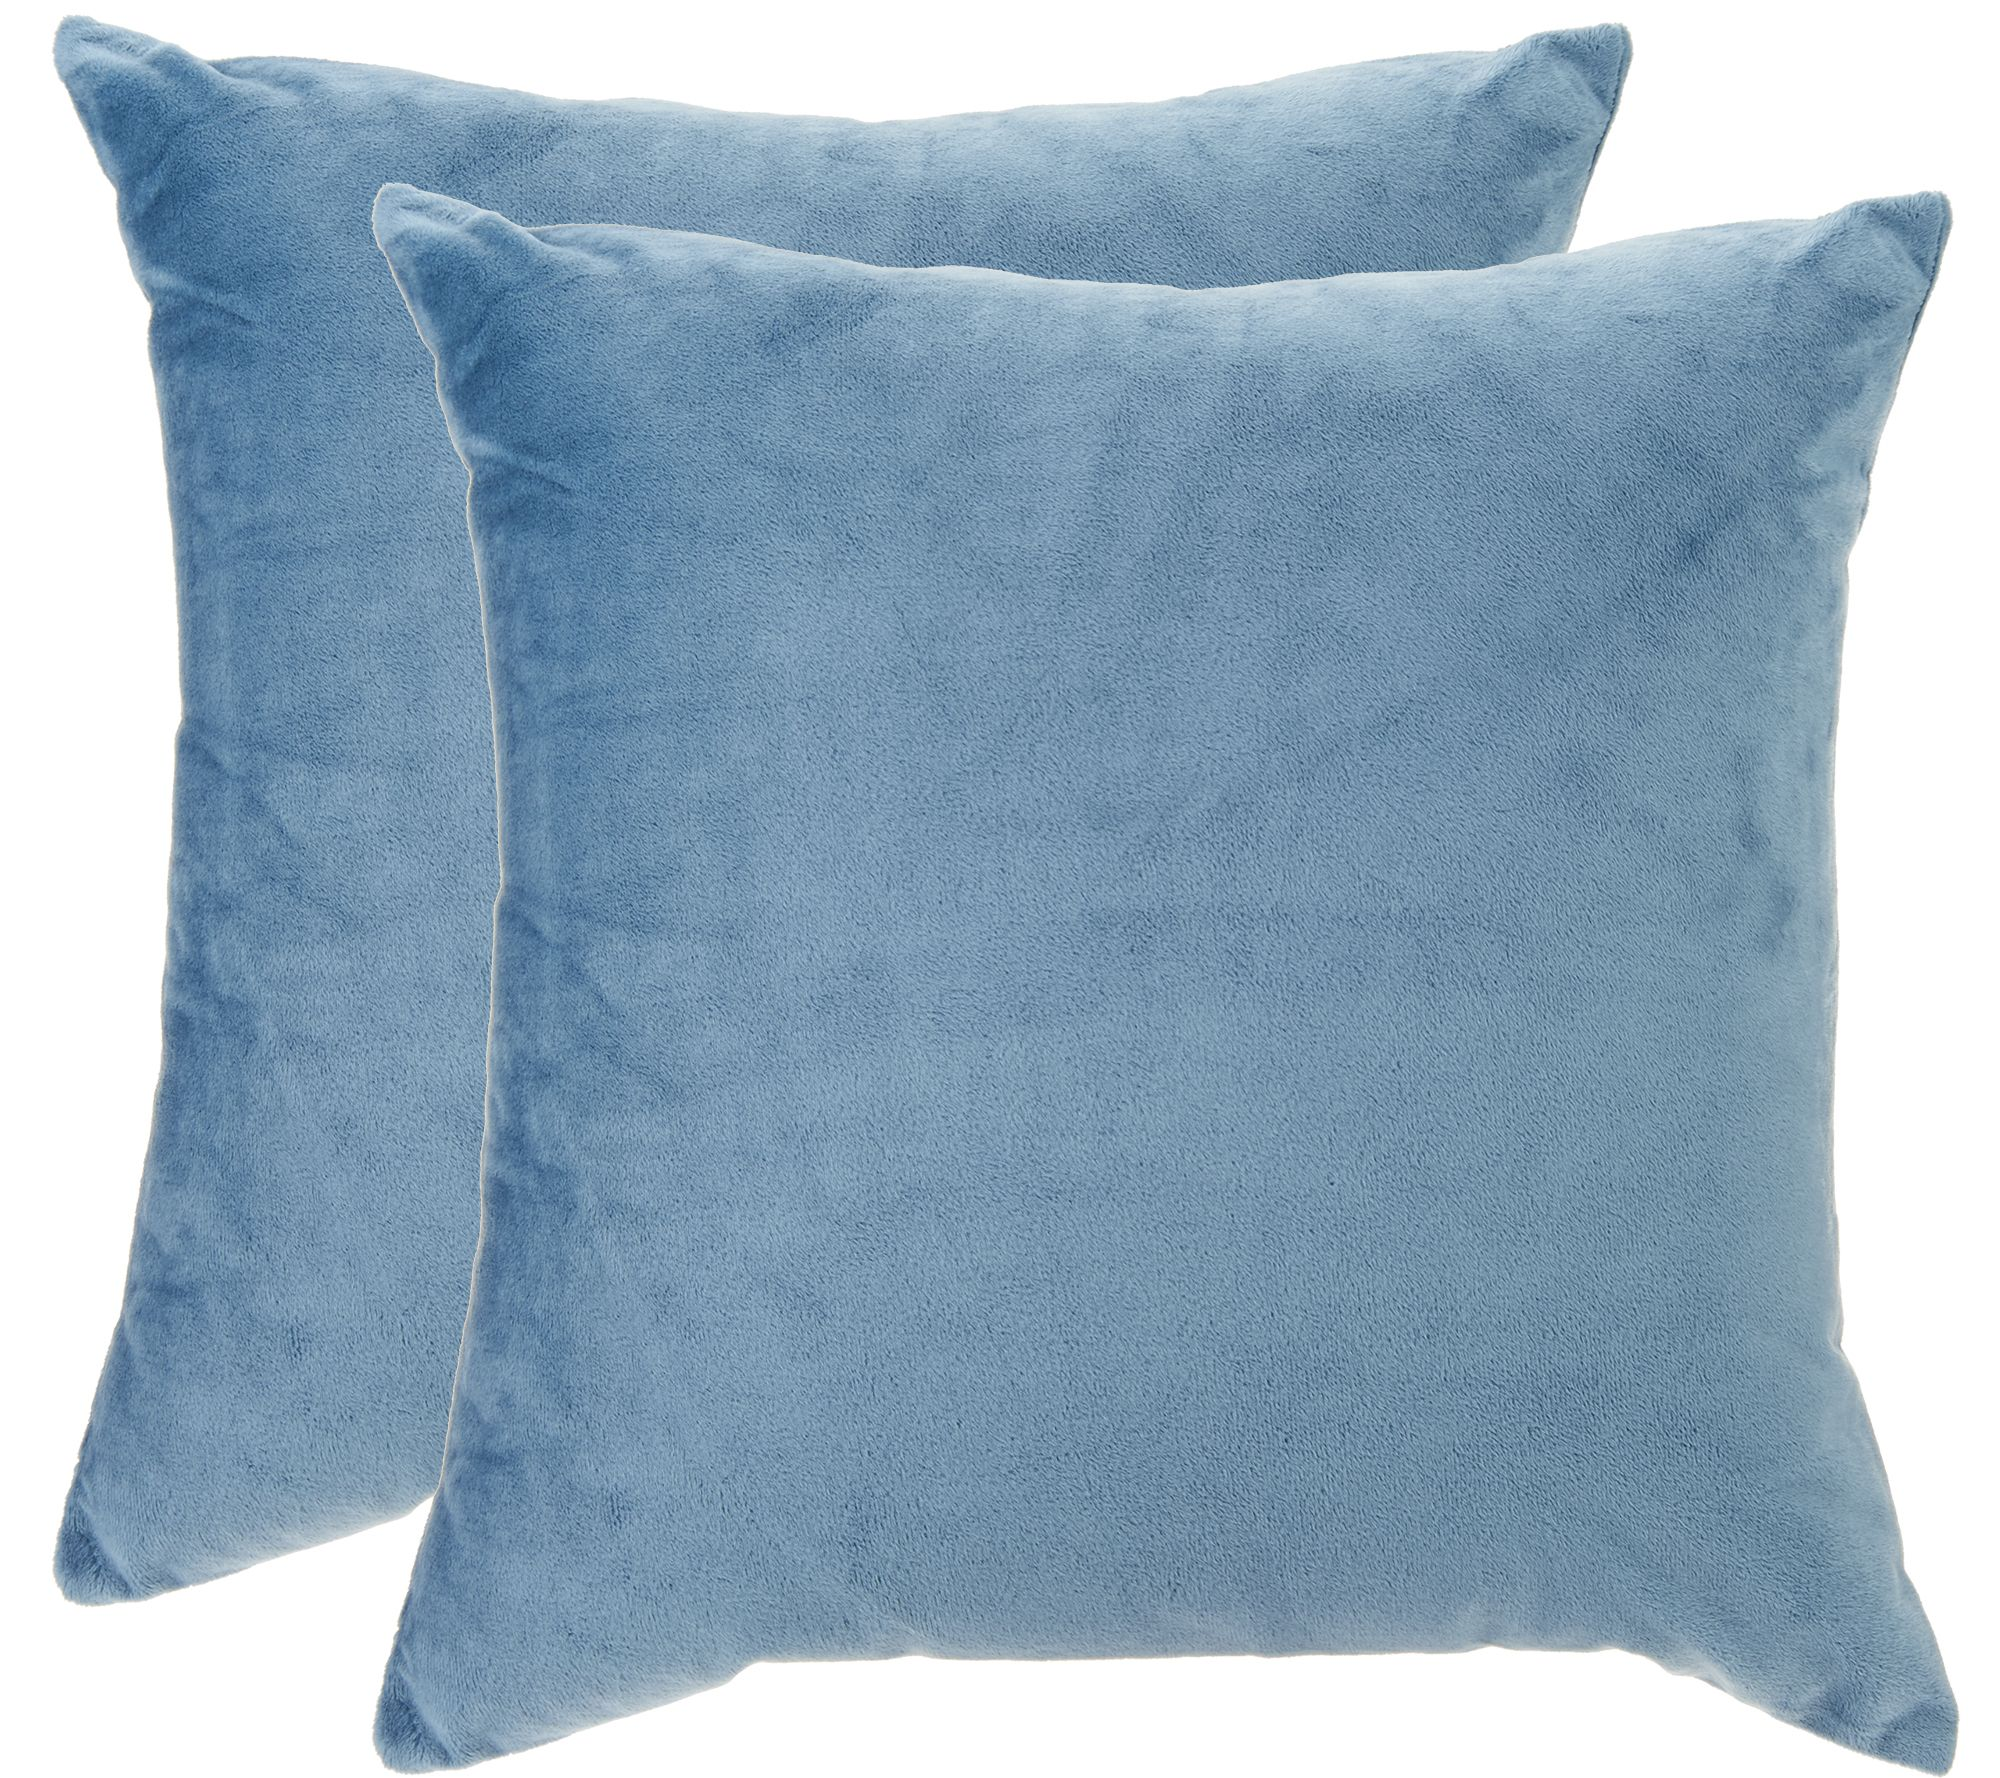 Qvc Decorative Pillows : Sure Fit Plush Comfort (2) 18